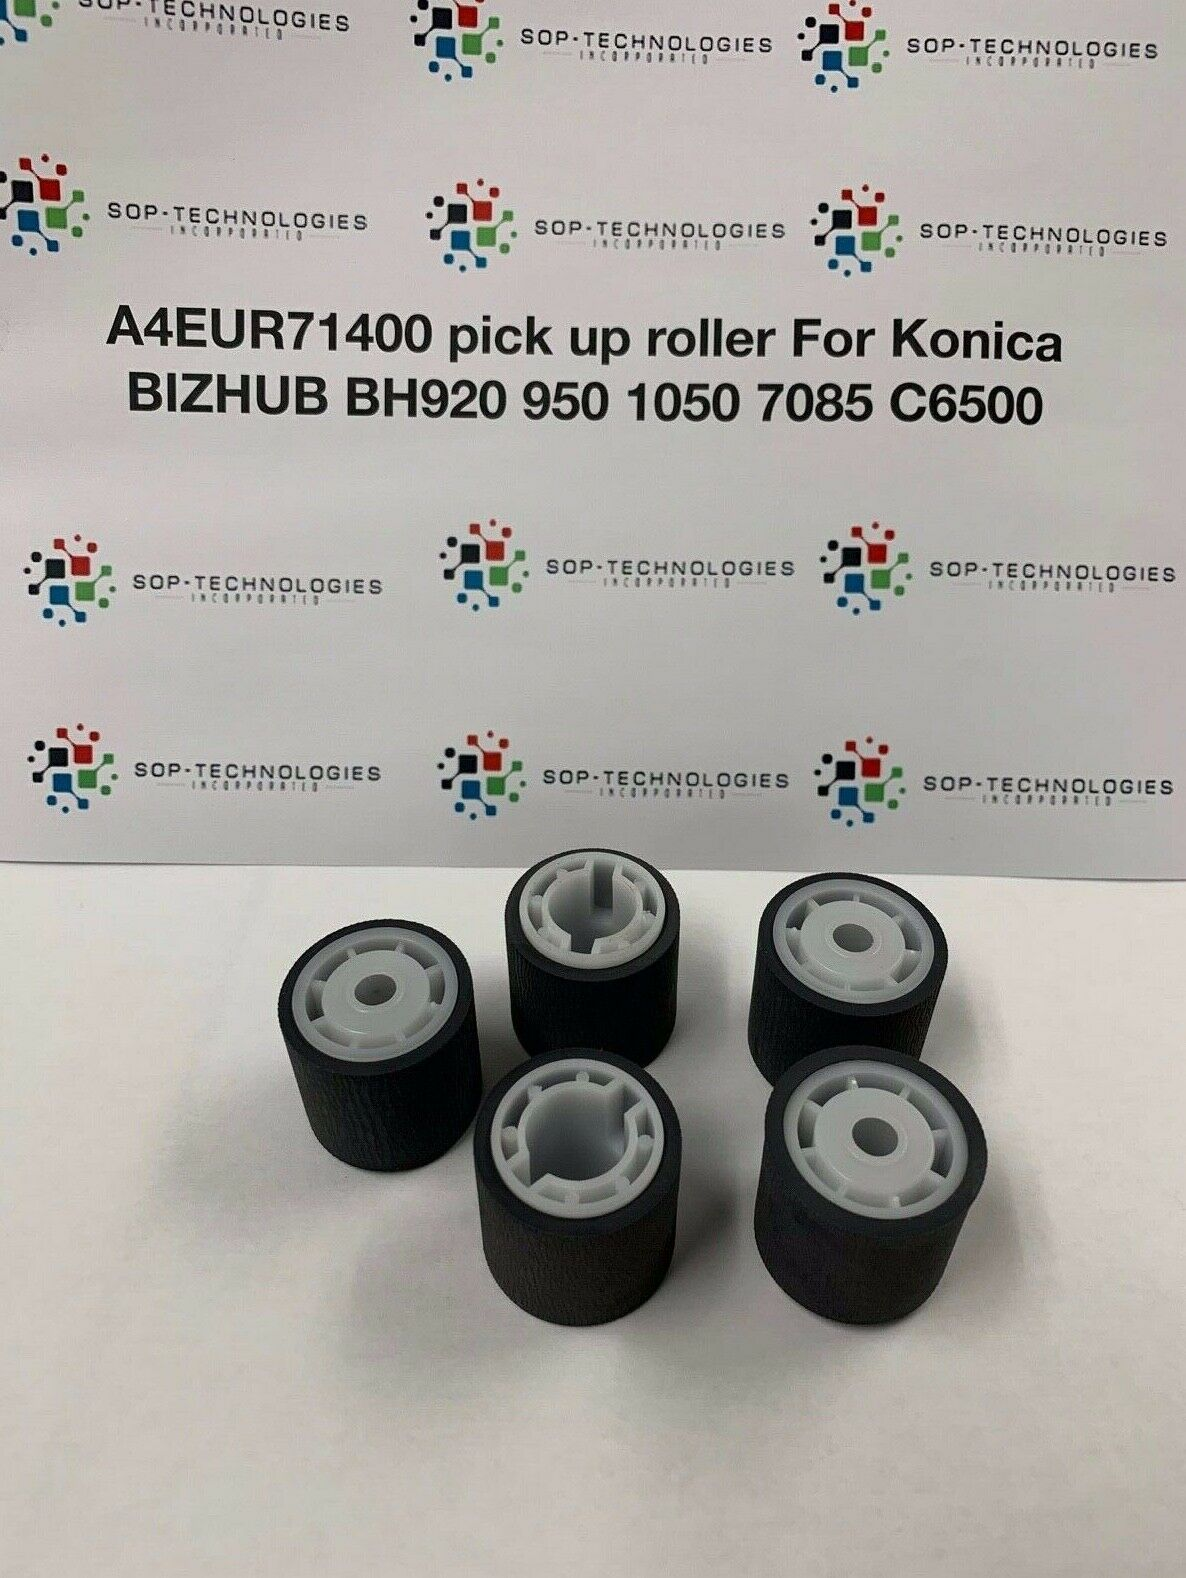 5 pc A4EUR71400 pick up roller For Konica BIZHUB BH920 950 1050 7085 C6500